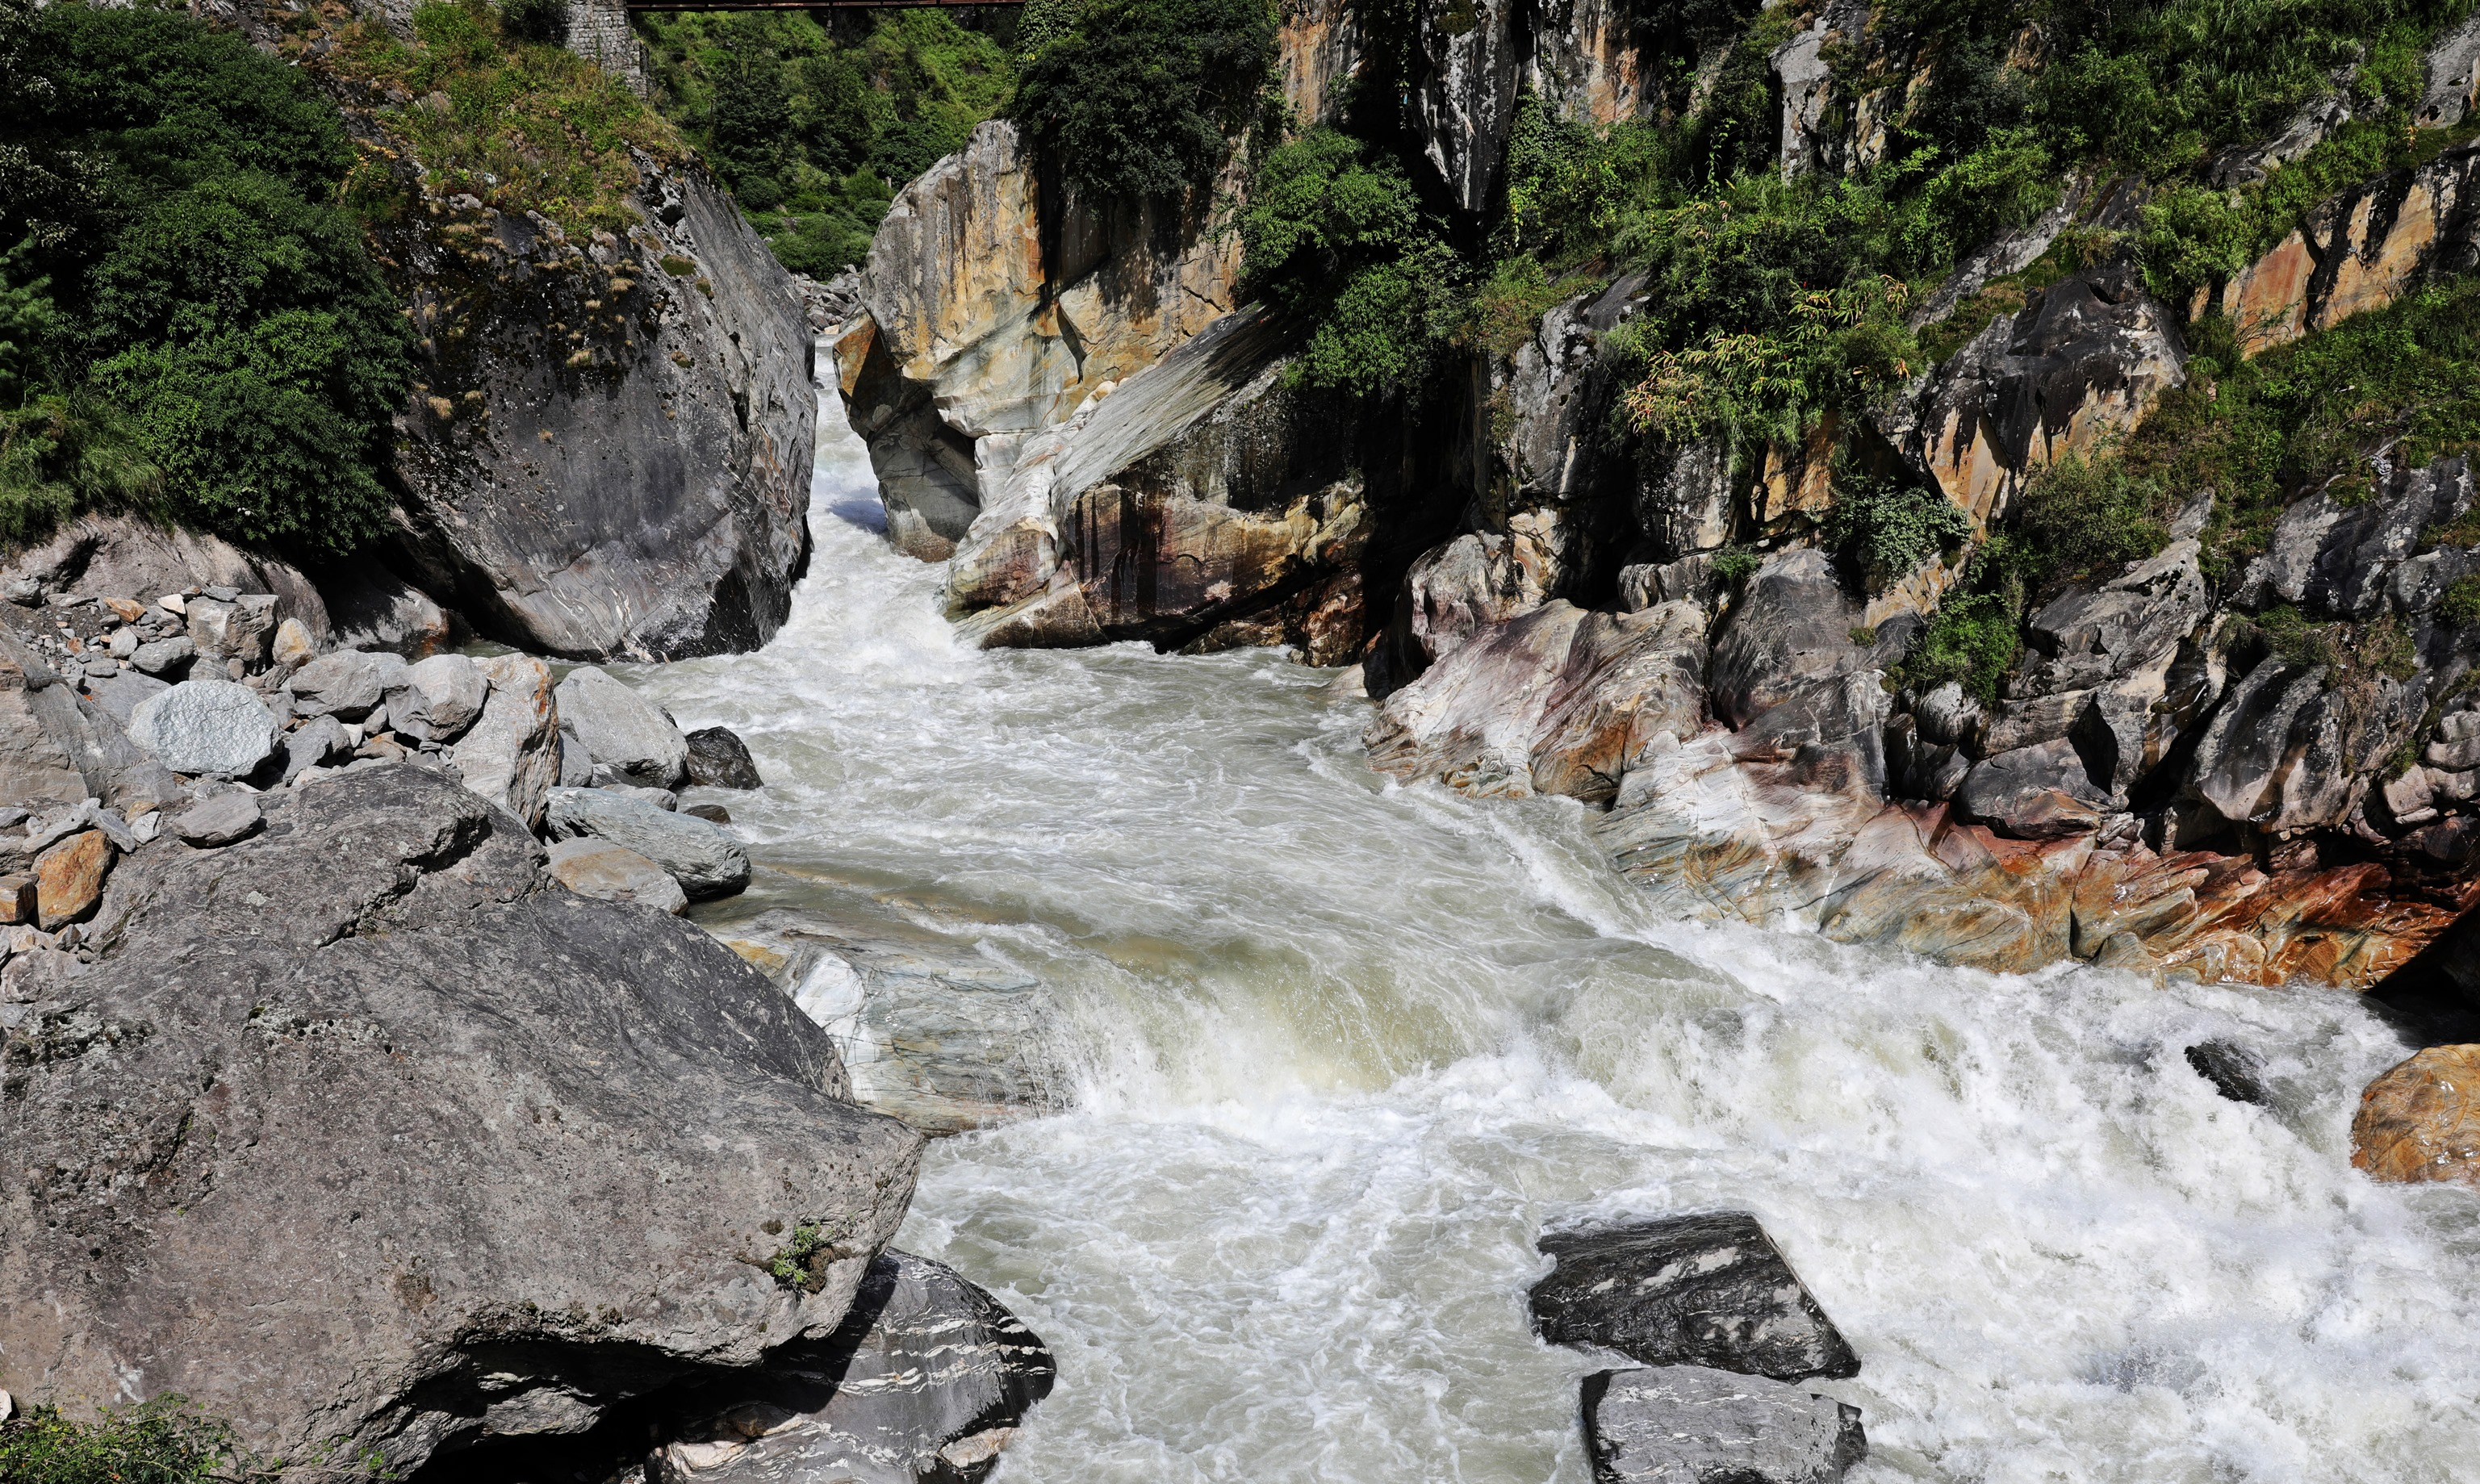 Parvati River with a rocky shore, Manikaran